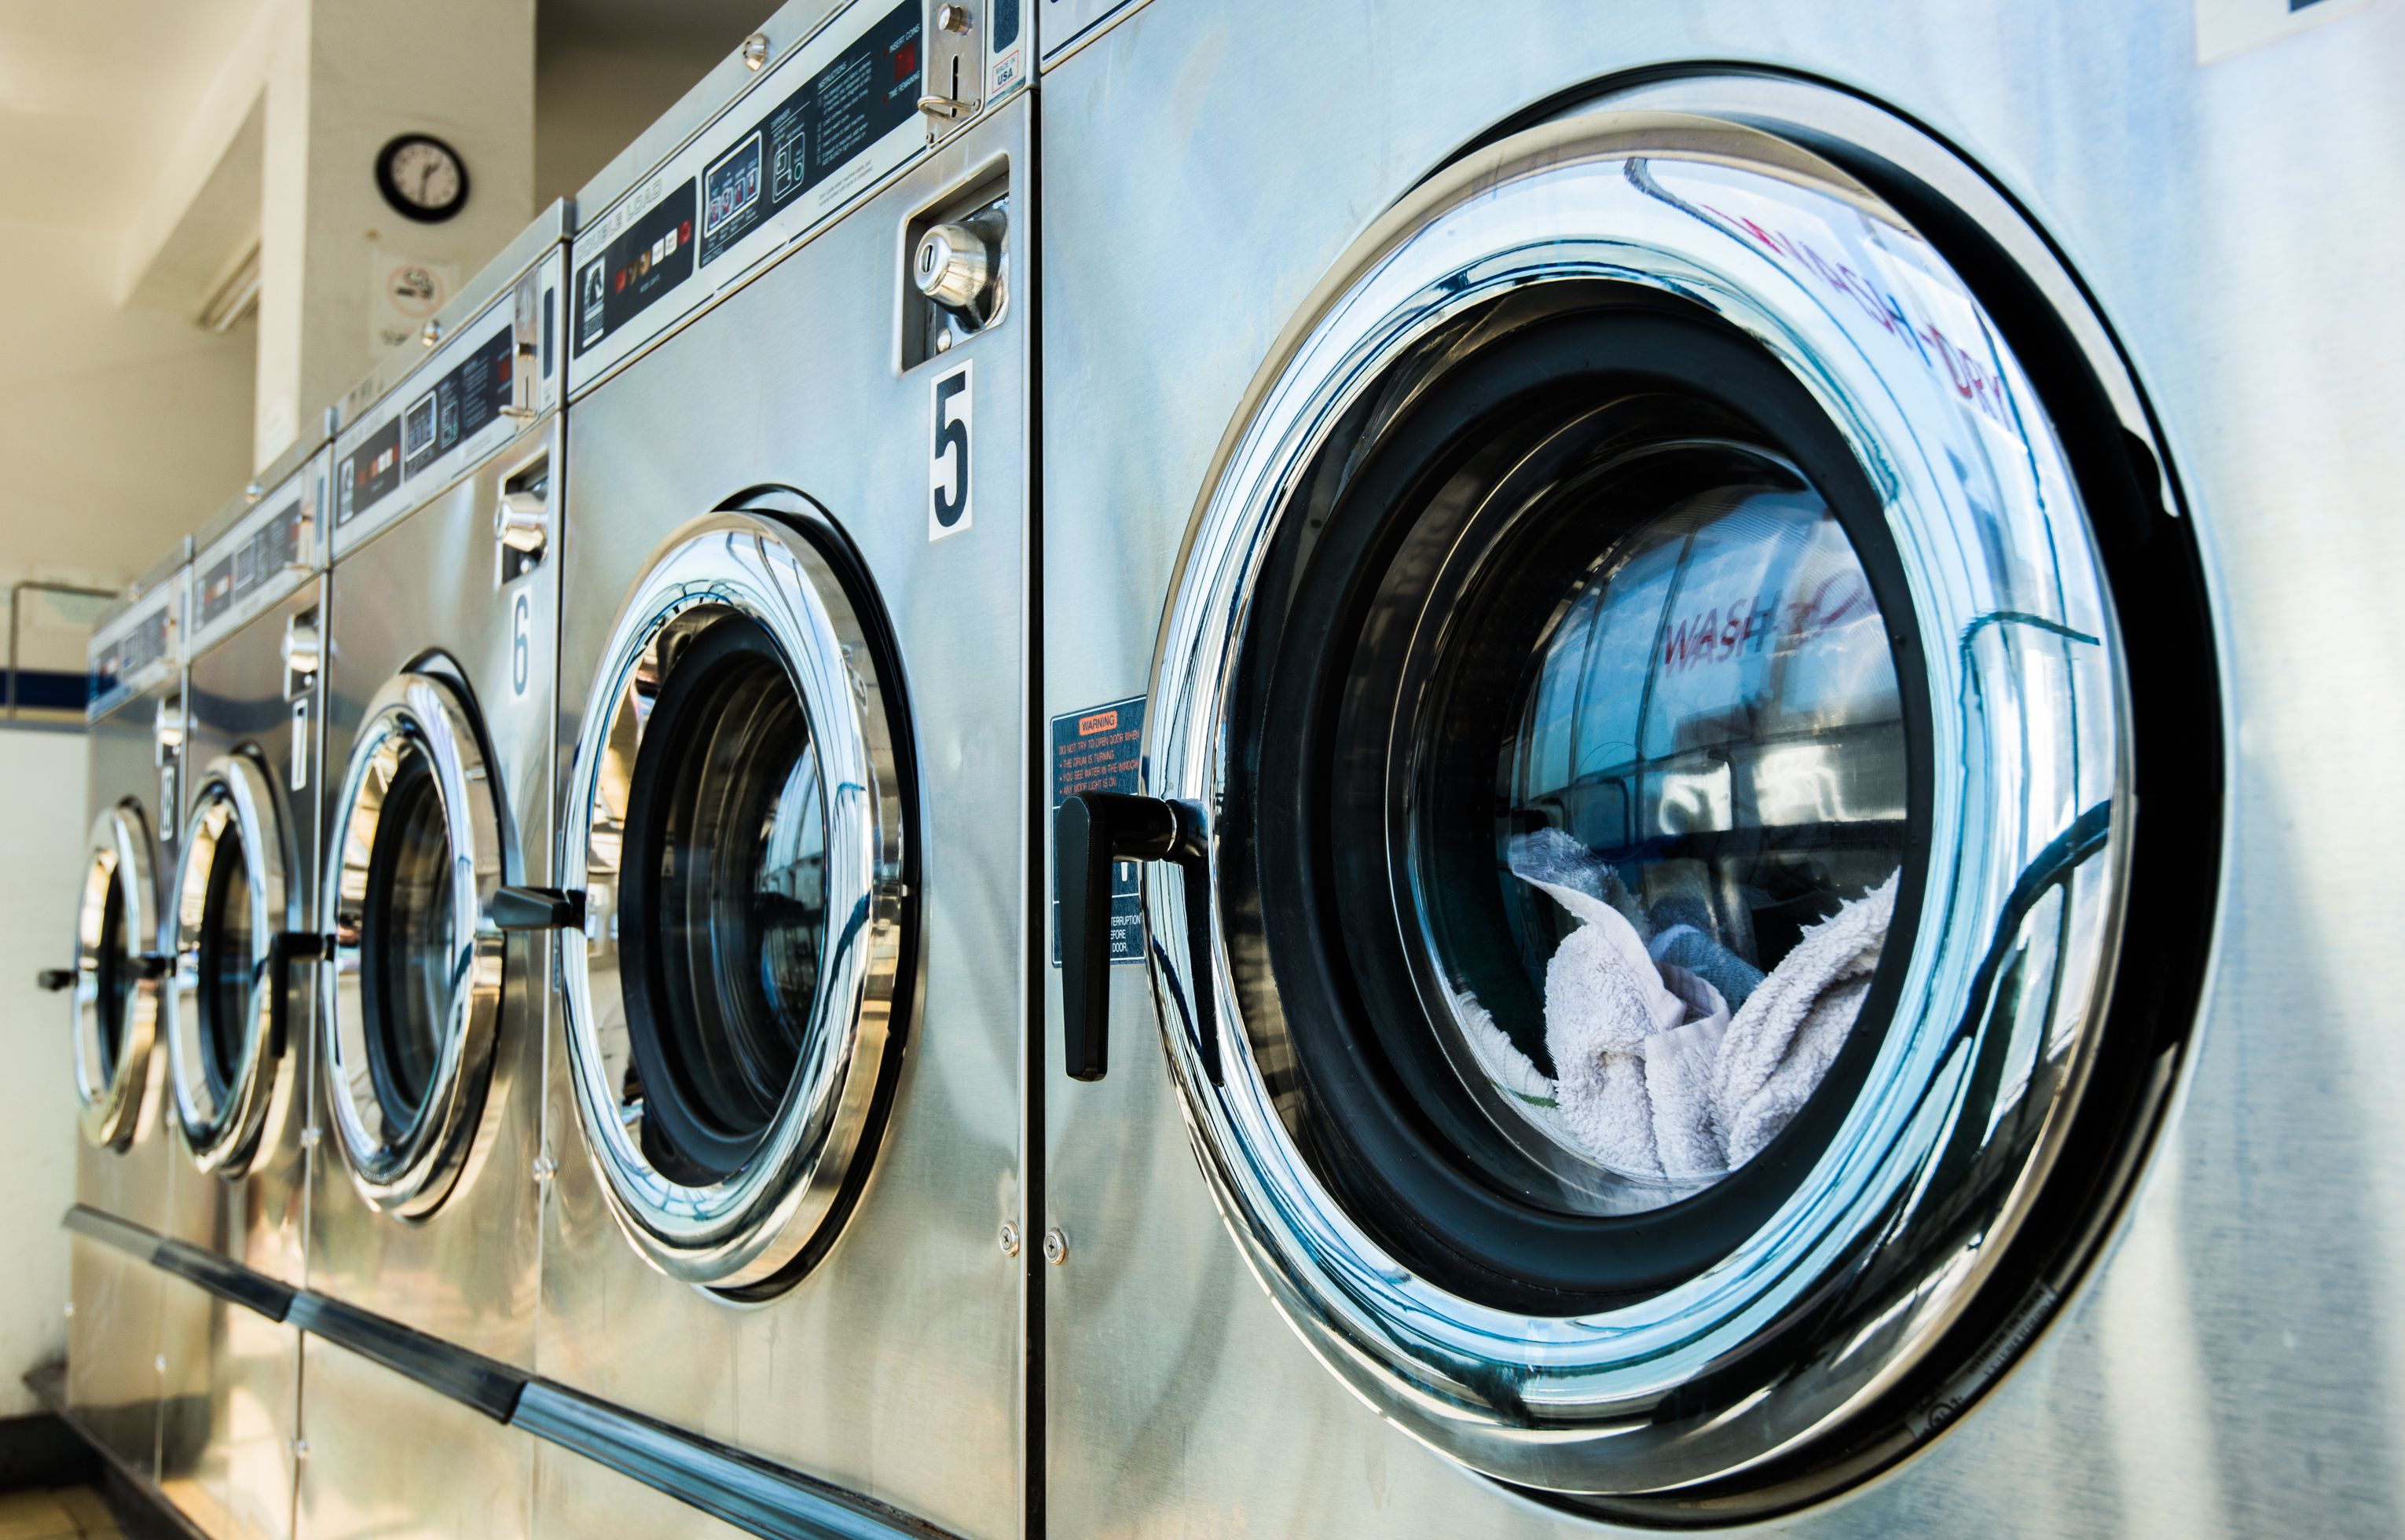 6 Ways To Keep Your Dark Clothes From Fading In The Wash Washing